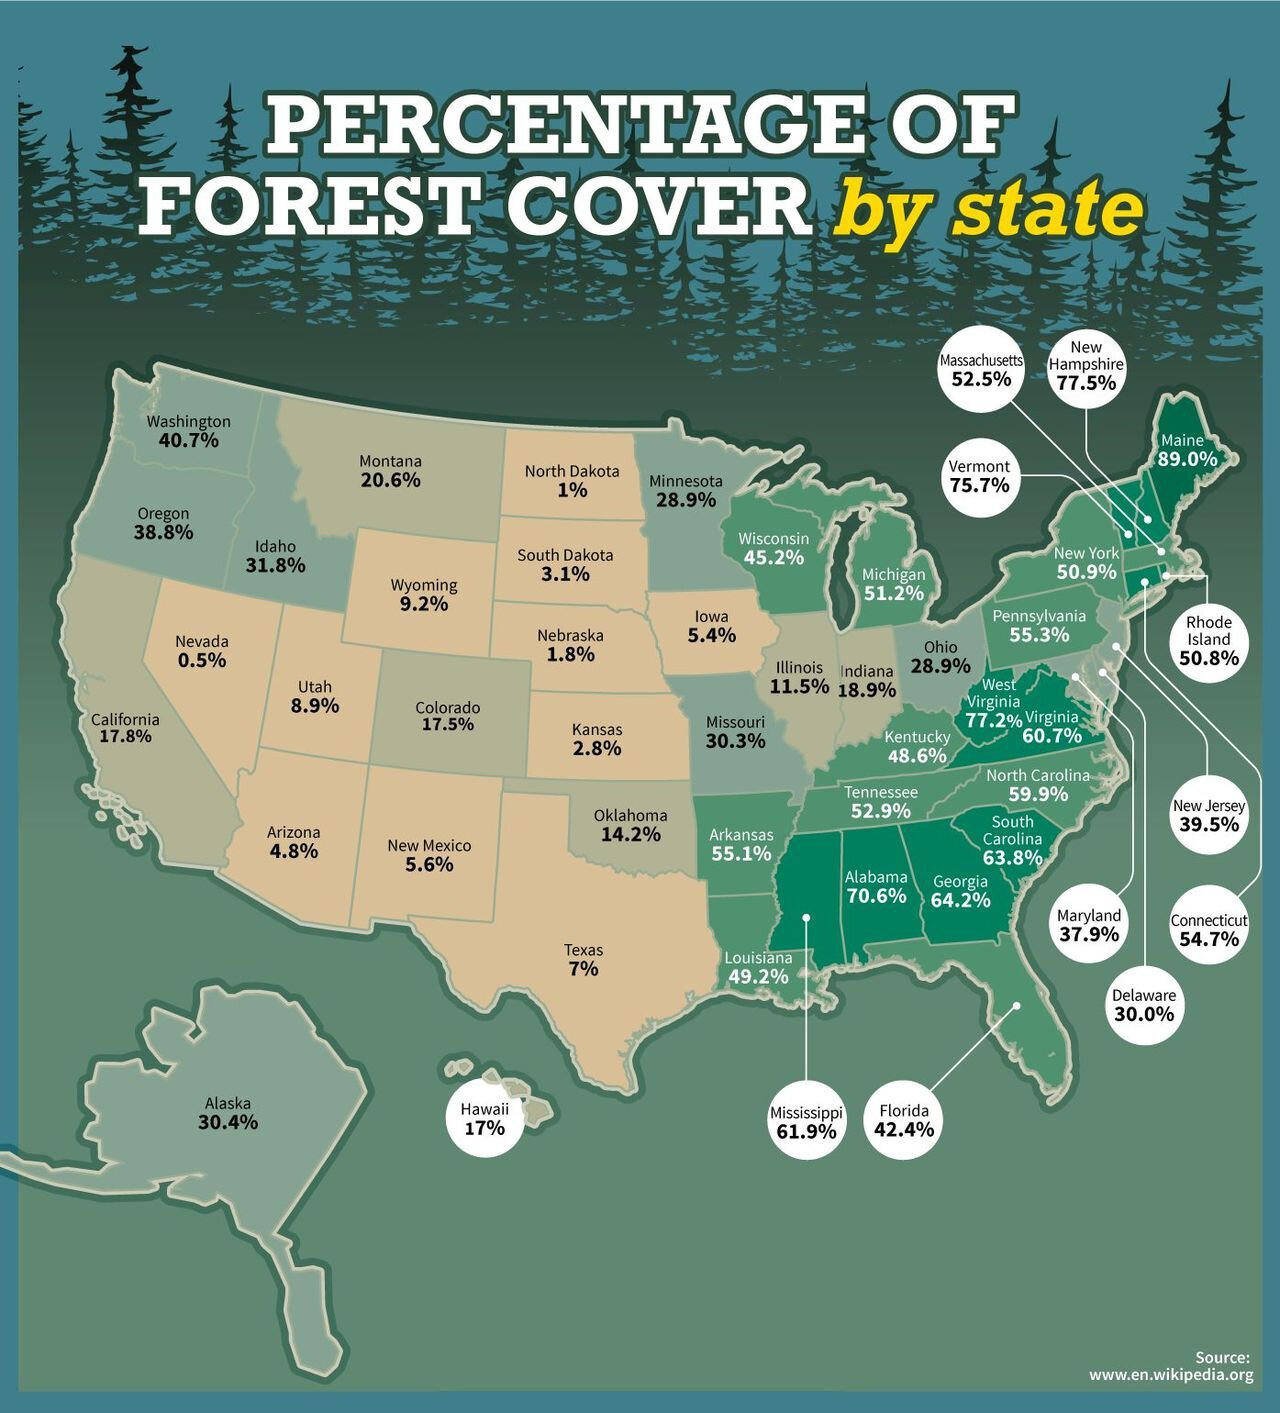 Percentage of Forest Cover by U